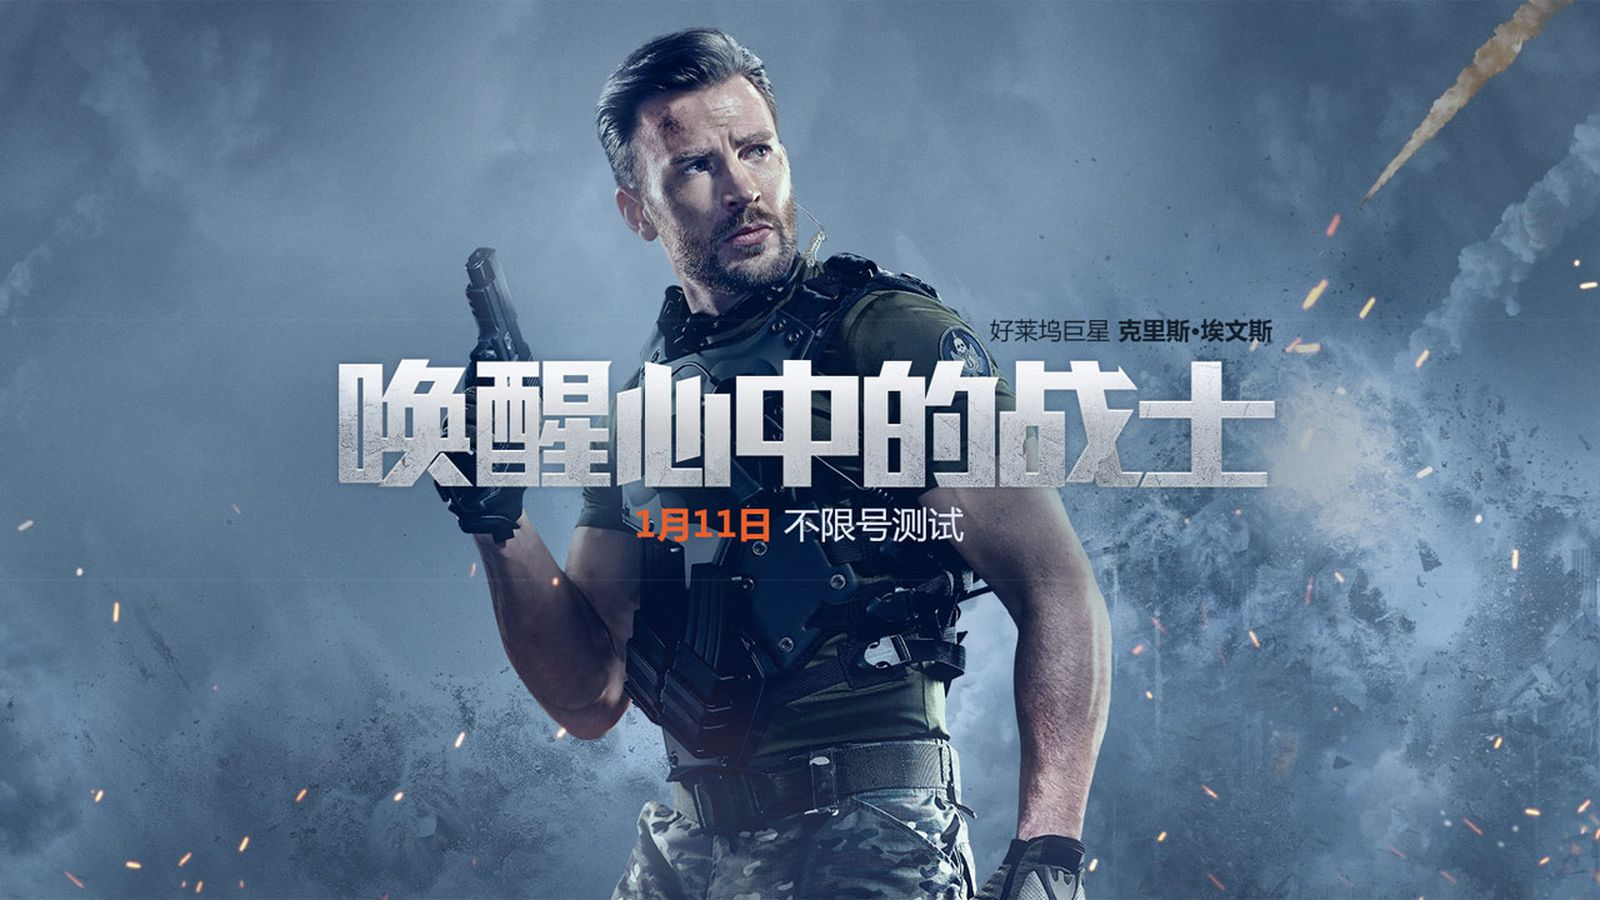 Call Of Duty Wallpaper Hd Call Of Duty Online Launches Seeks To Tap Huge Chinese